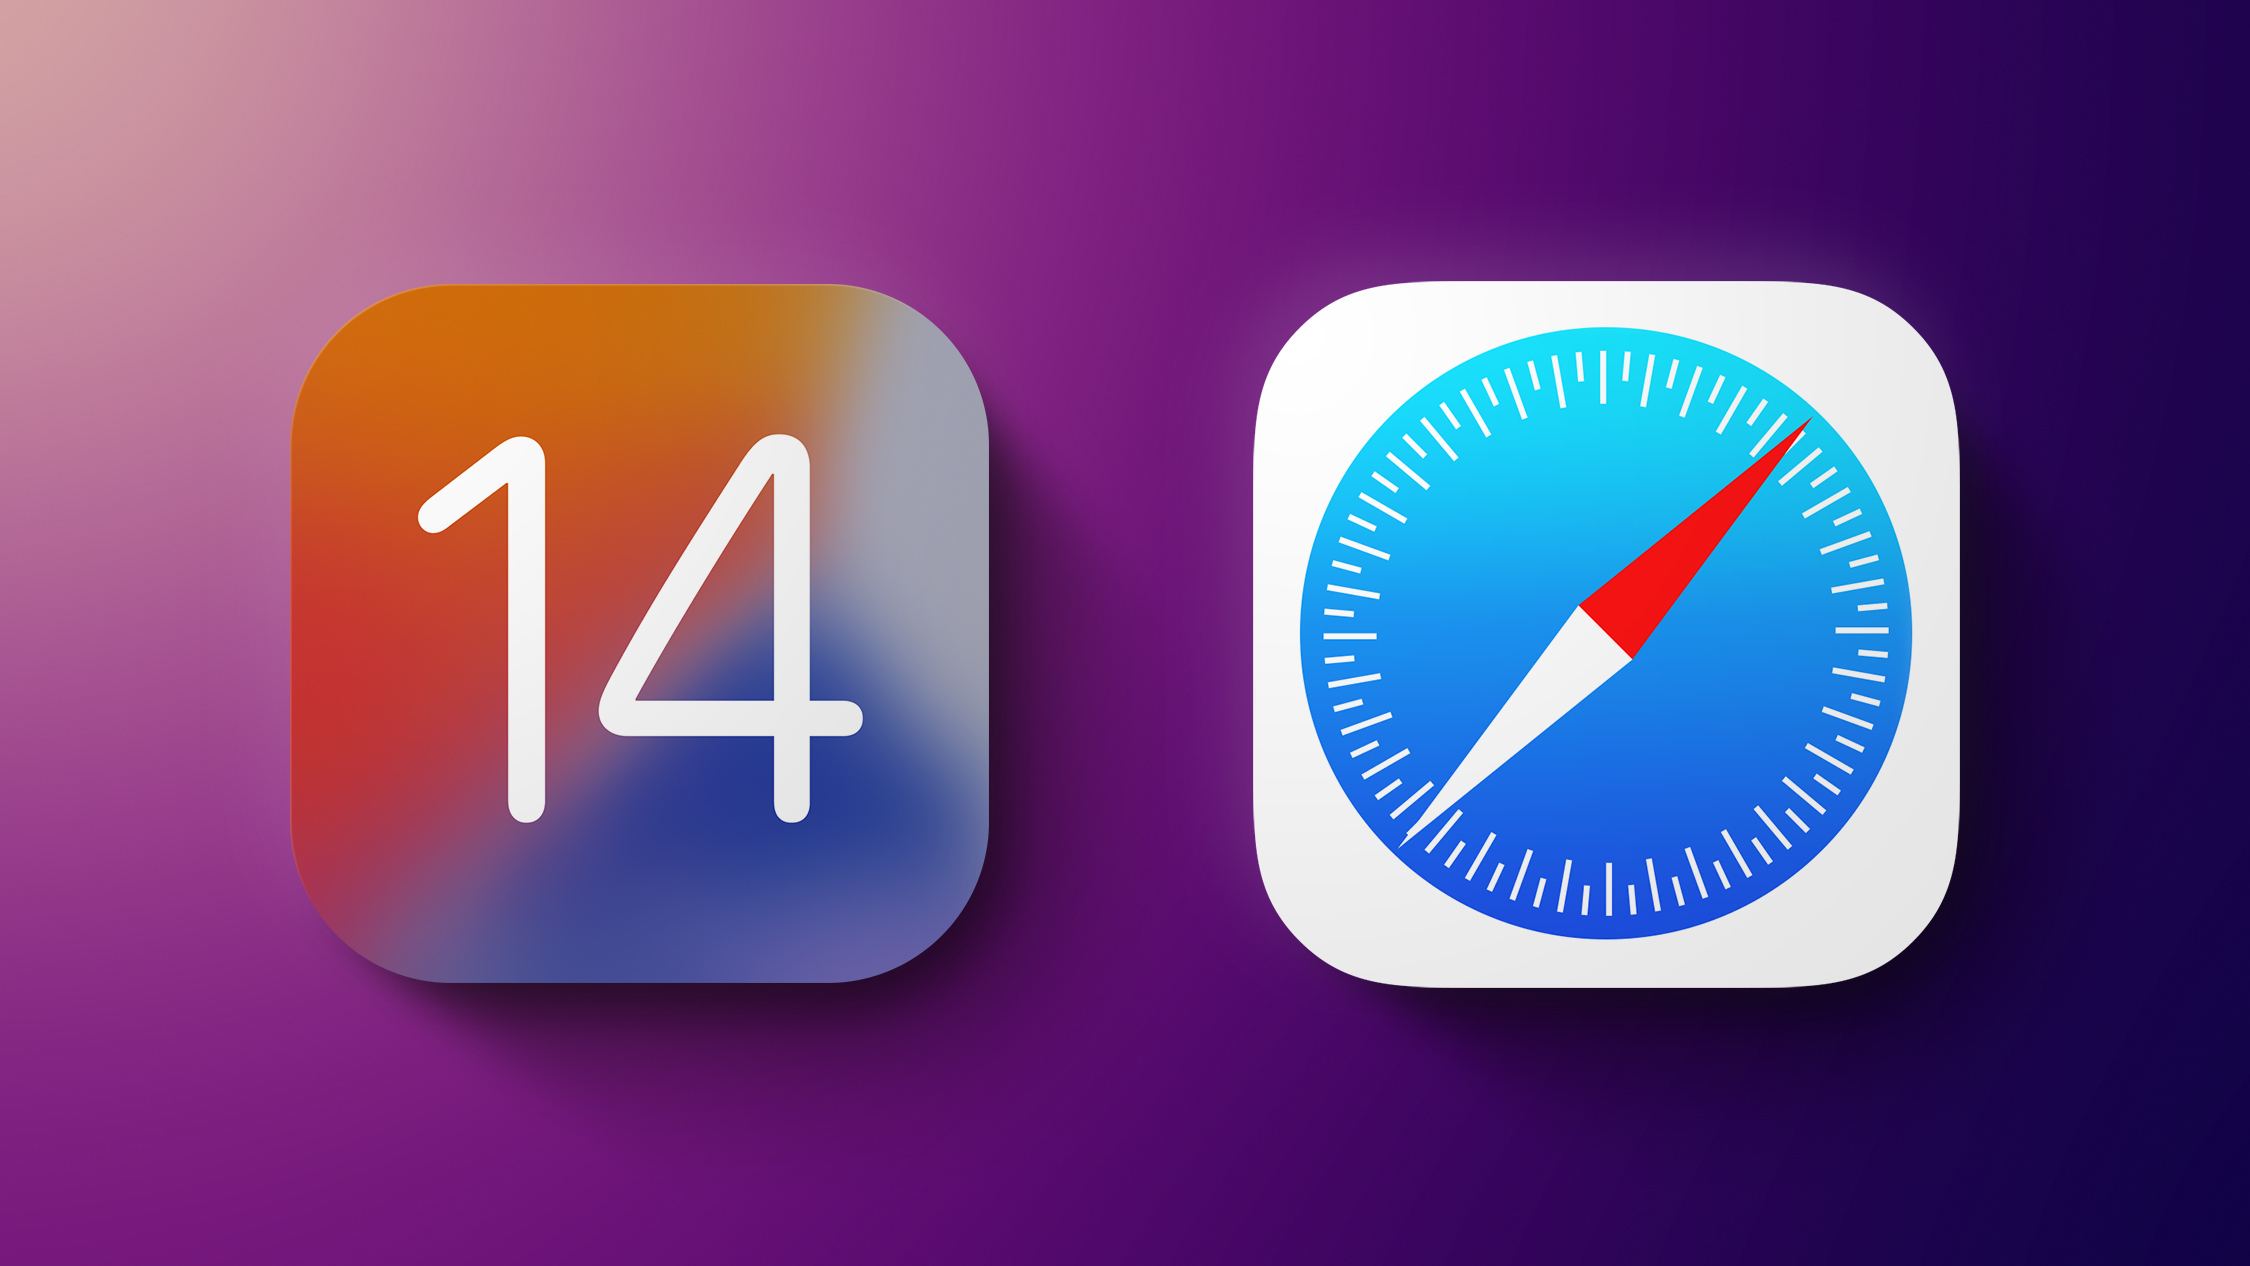 Safari iOS 14 Guide: Privacy Report, Built-In Translation, Compromised Password Alerts and More